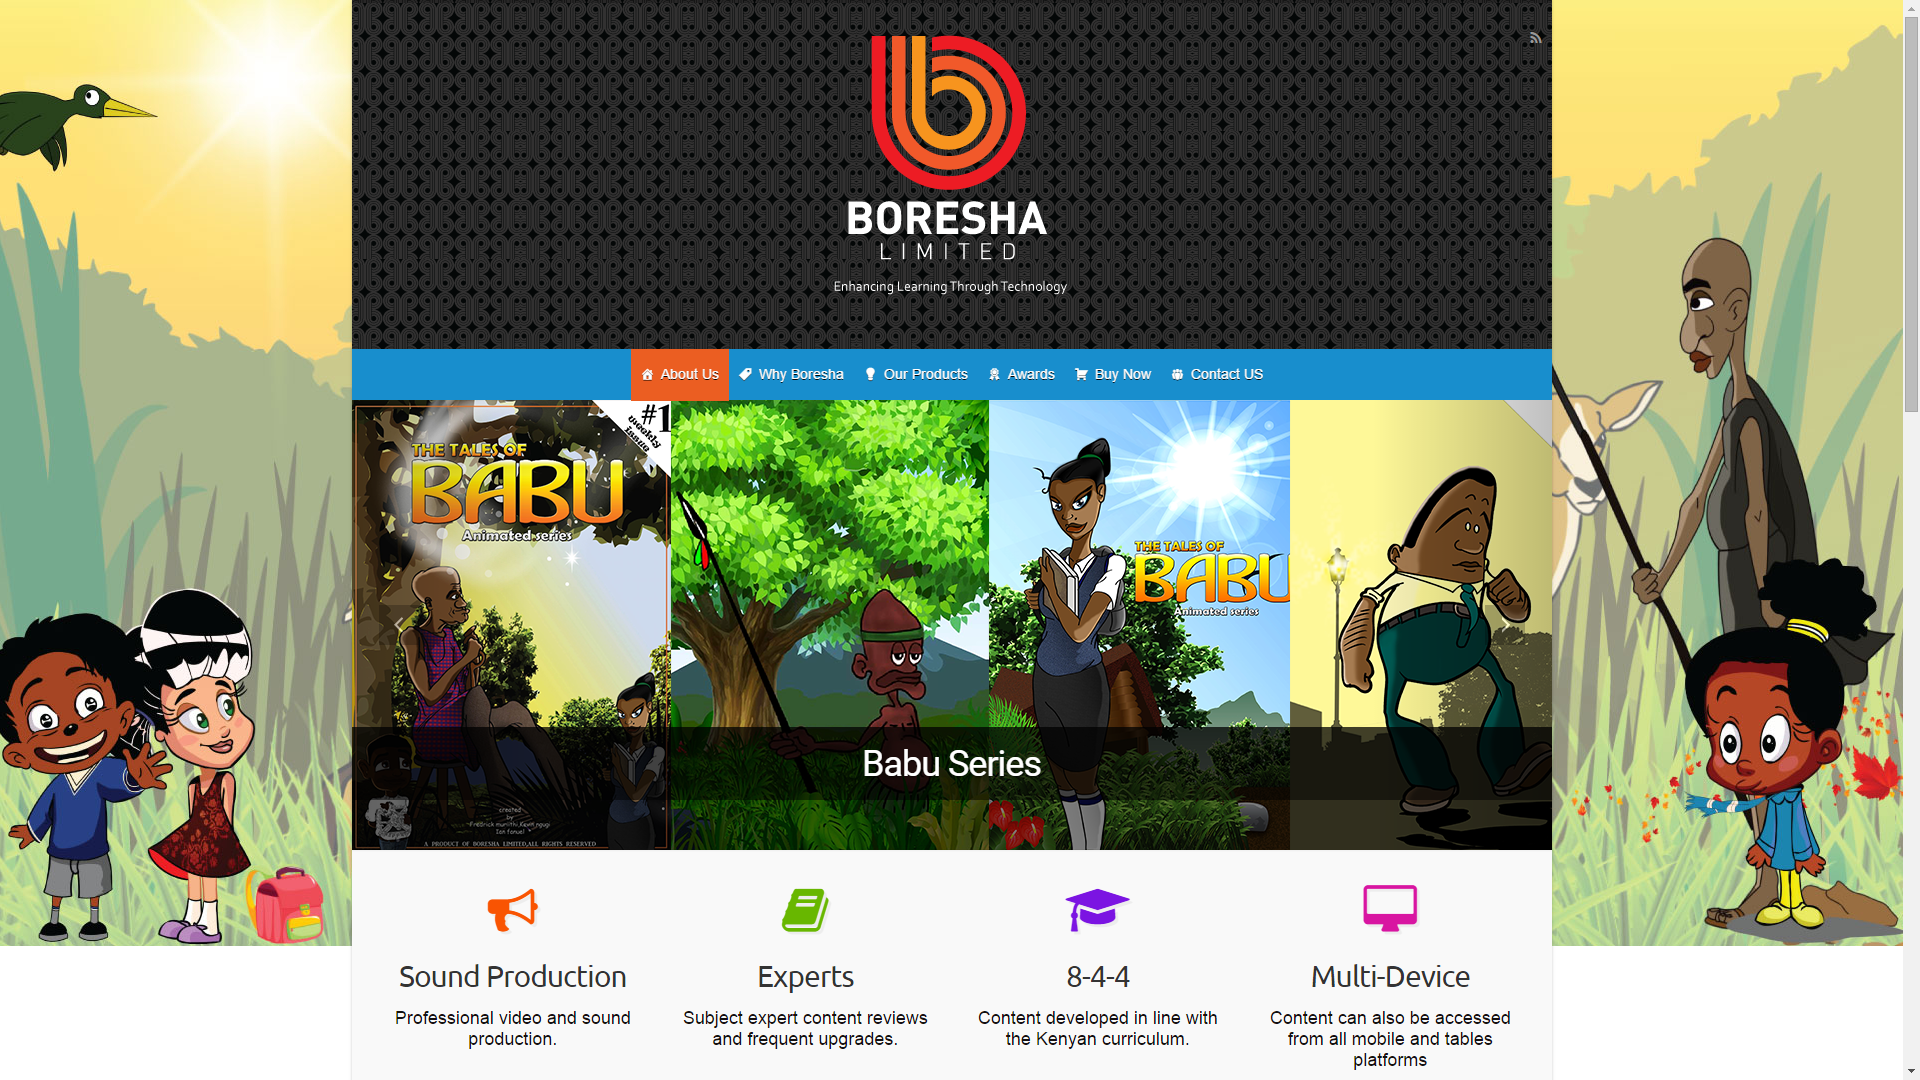 Boresha ltd